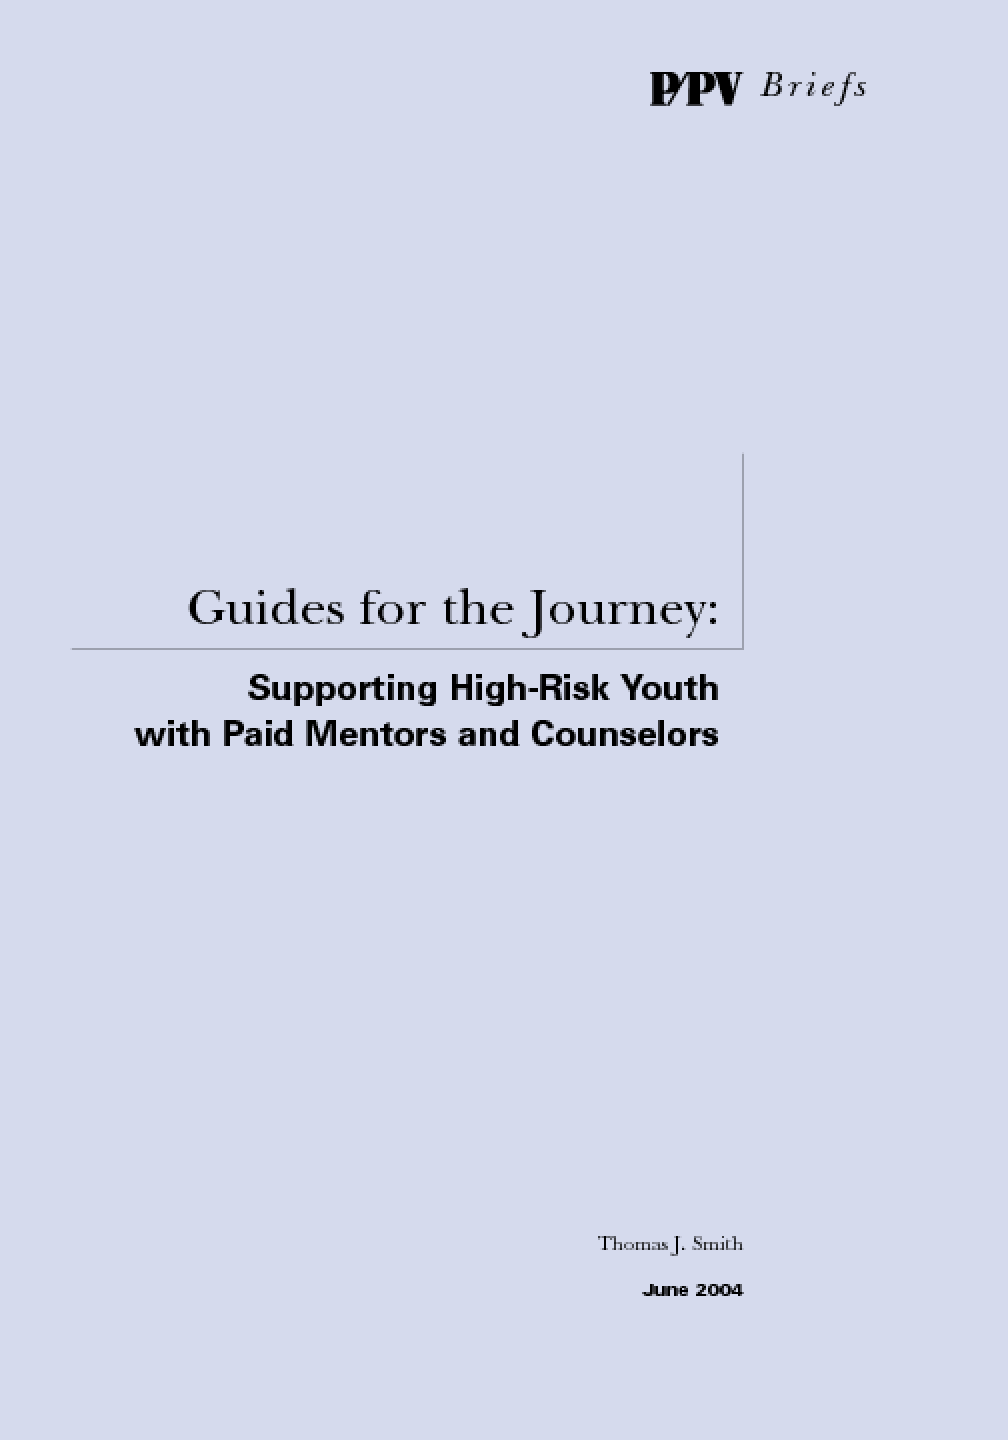 Guides for the Journey: Supporting High-Risk Youth with Paid Mentors and Counselors